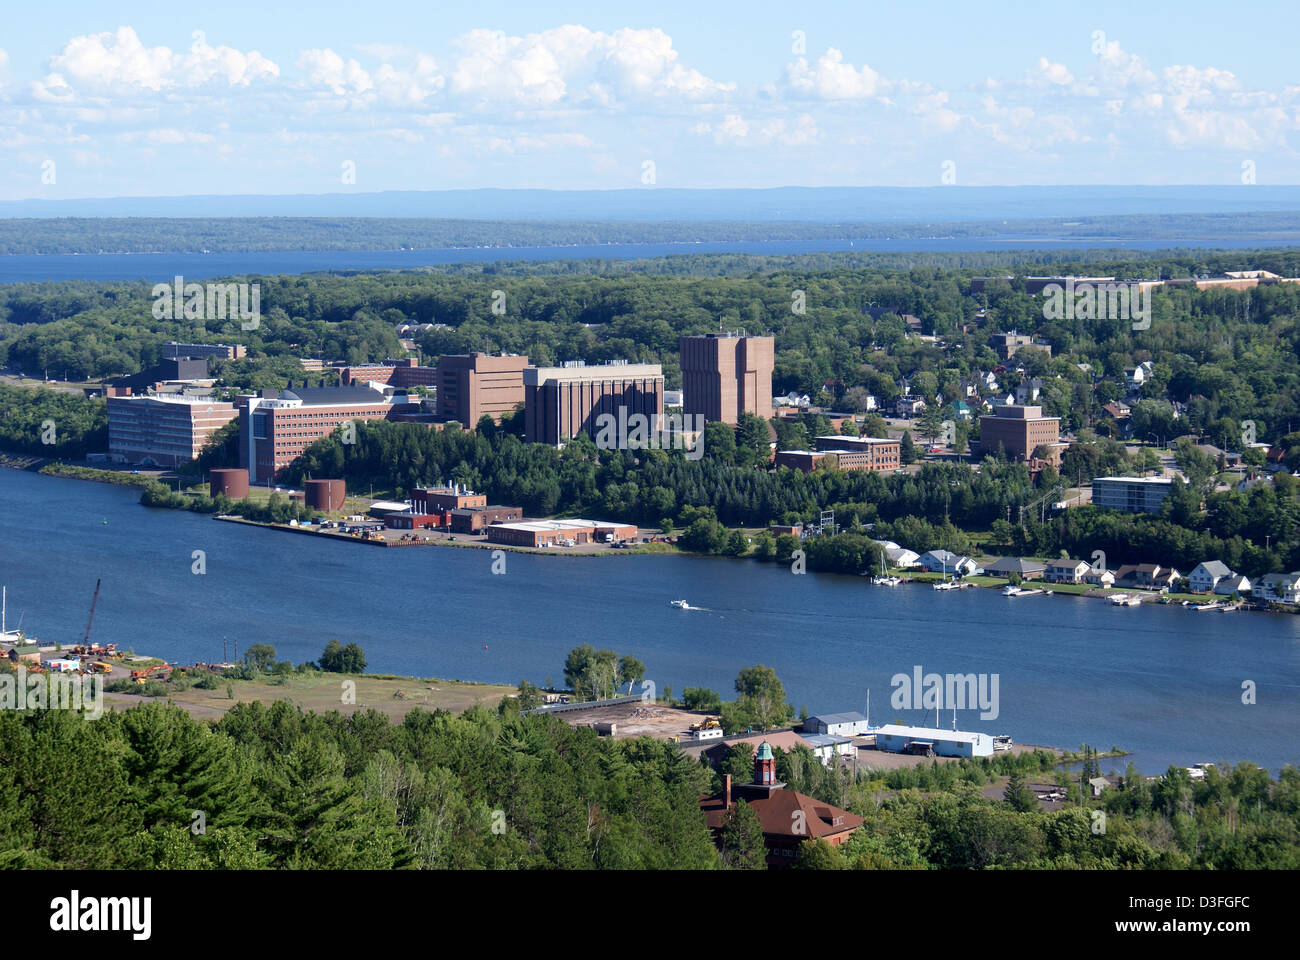 The Campus of Michigan Technological University - Stock Image